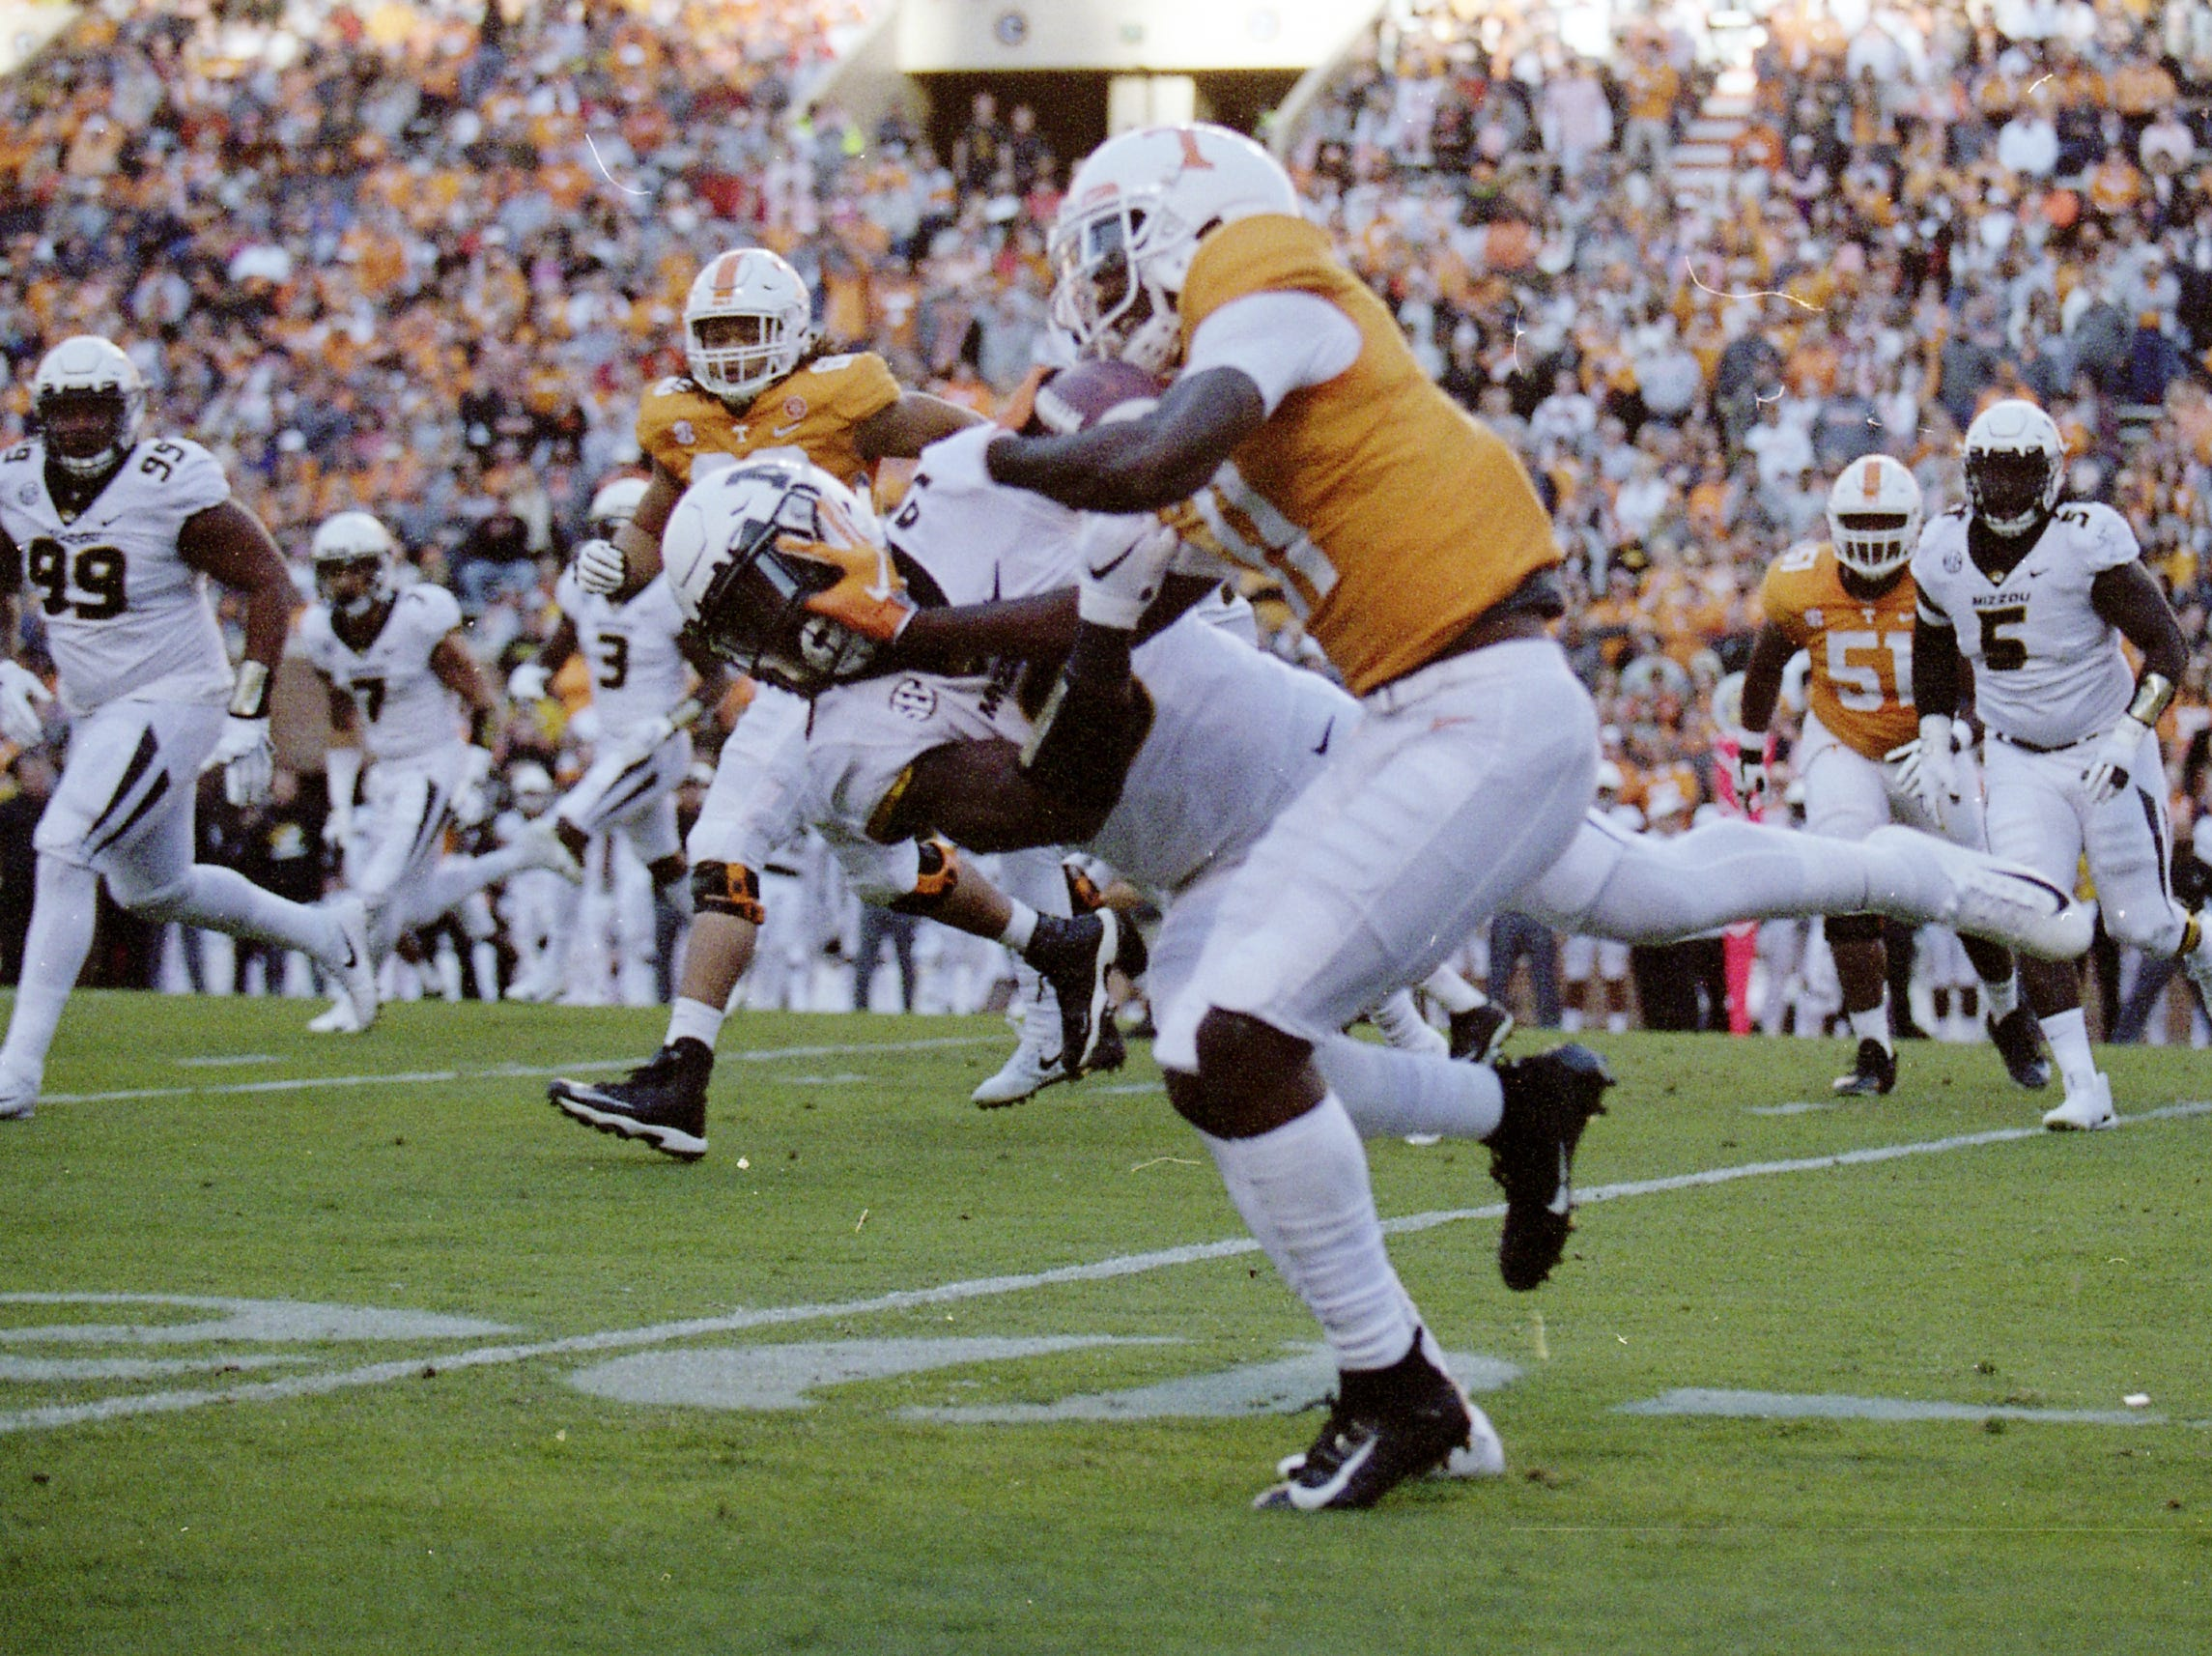 Tennessee wide receiver Jordan Murphy (11) pushes away A Missouri defender during a game between Tennessee and Missouri at Neyland Stadium in Knoxville, Tennessee on Saturday, November 17, 2018.